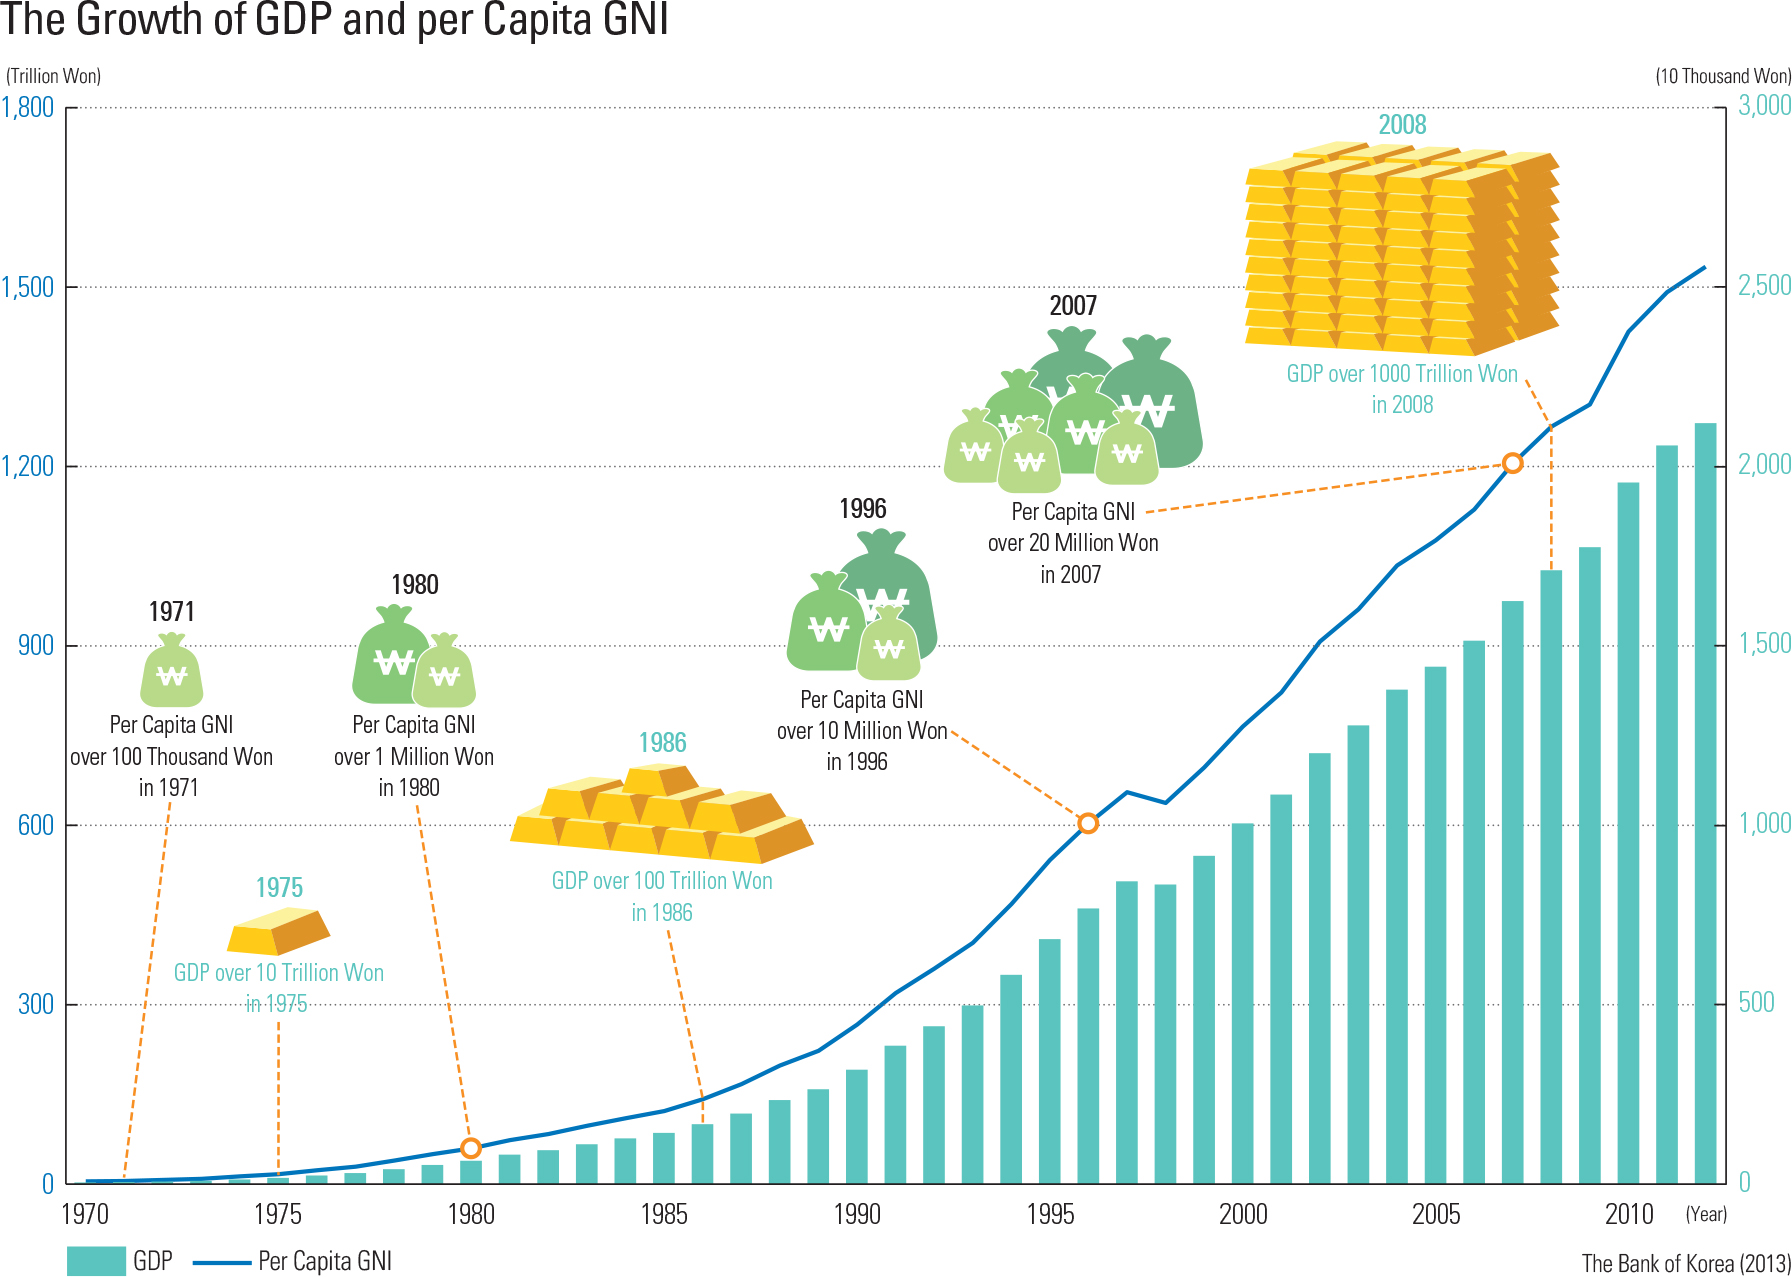 """The Growth of GDP and per Capita GNI<p class=""""oz_zoom"""" zimg=""""http://imagedata.cafe24.com/us_1/us1_97-3_2.jpg""""><span style=""""font-family:Nanum Myeongjo;""""><span style=""""font-size:18px;""""><span class=""""label label-danger"""">UPDATE DATA</span></span></p>"""